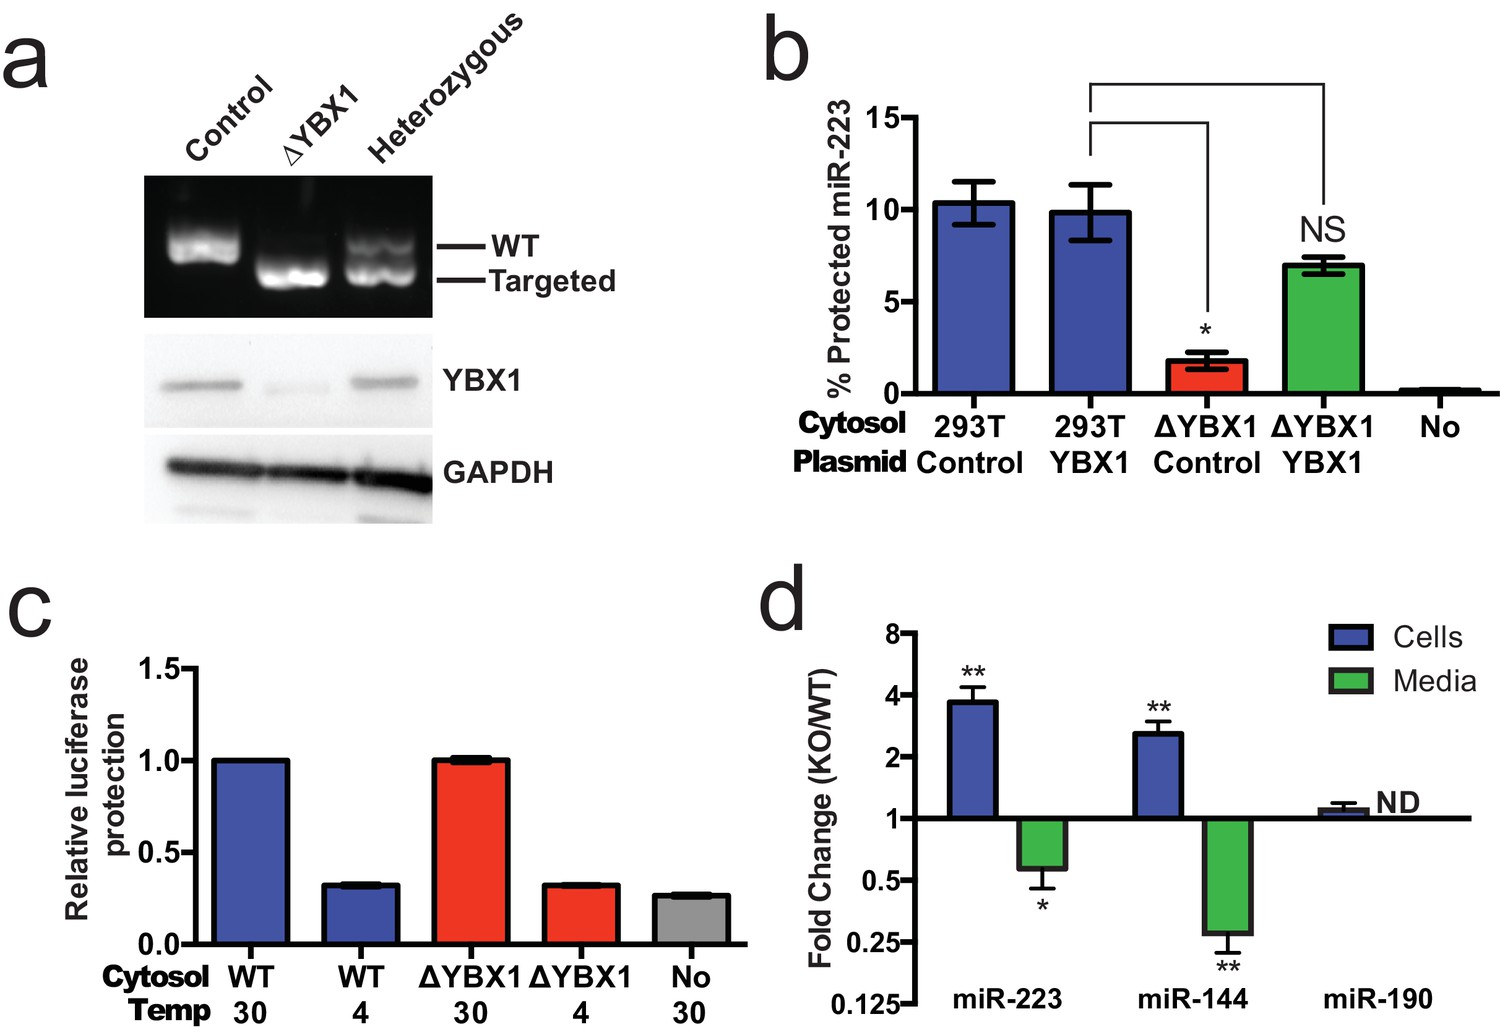 hight resolution of ybx1 is necessary for exosomal mirna packaging and secretion